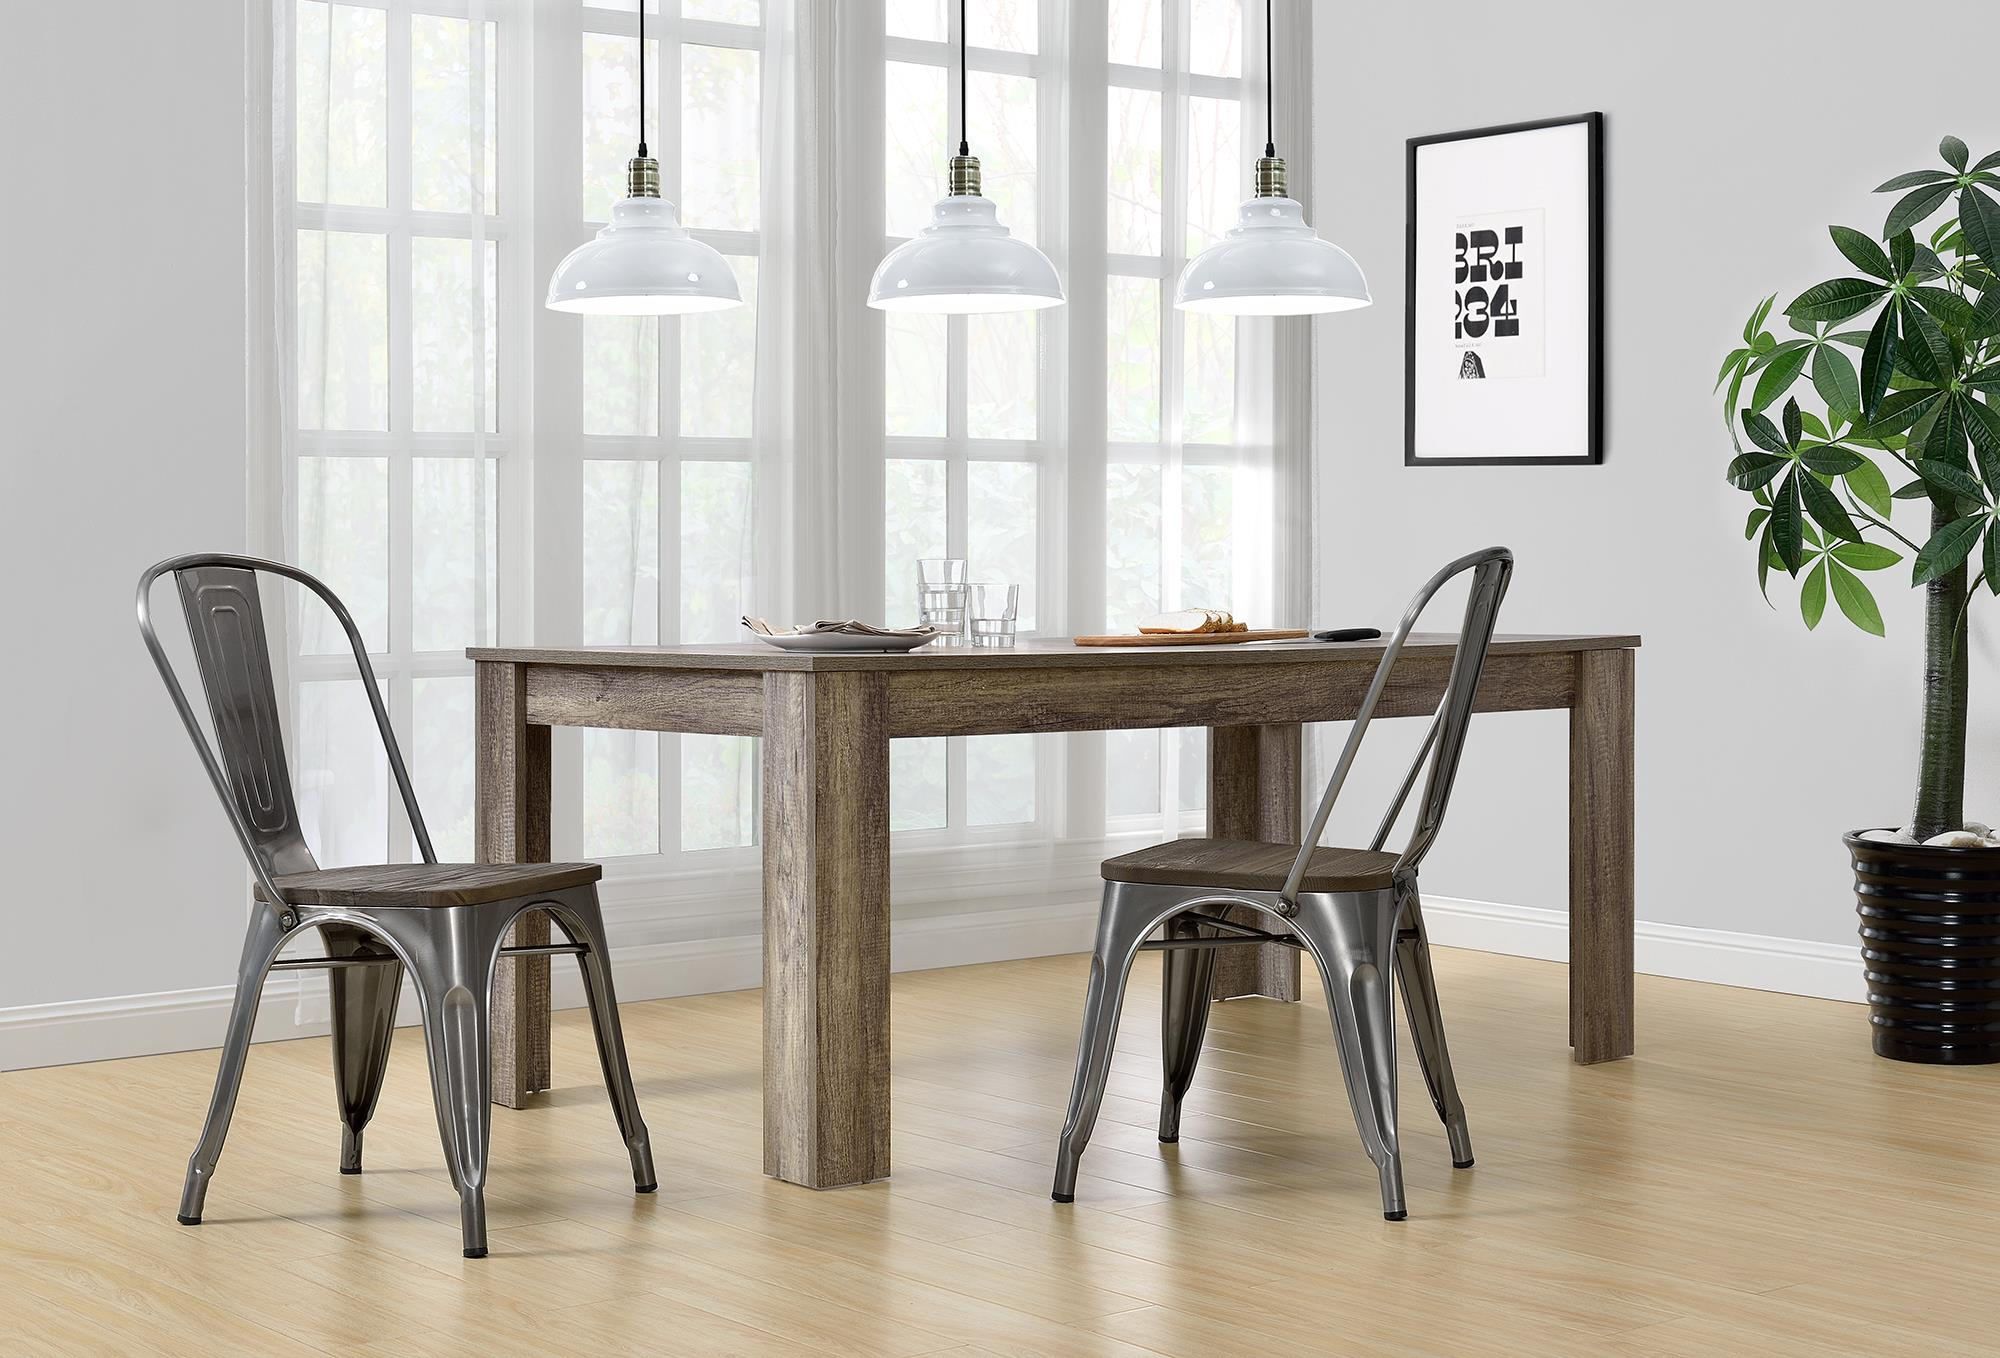 Click here to buy Better Homes and Gardens Aidan Metal Dining Chair with Wood Seat, Set of 2, Multiple Colors by Dorel Home Products.